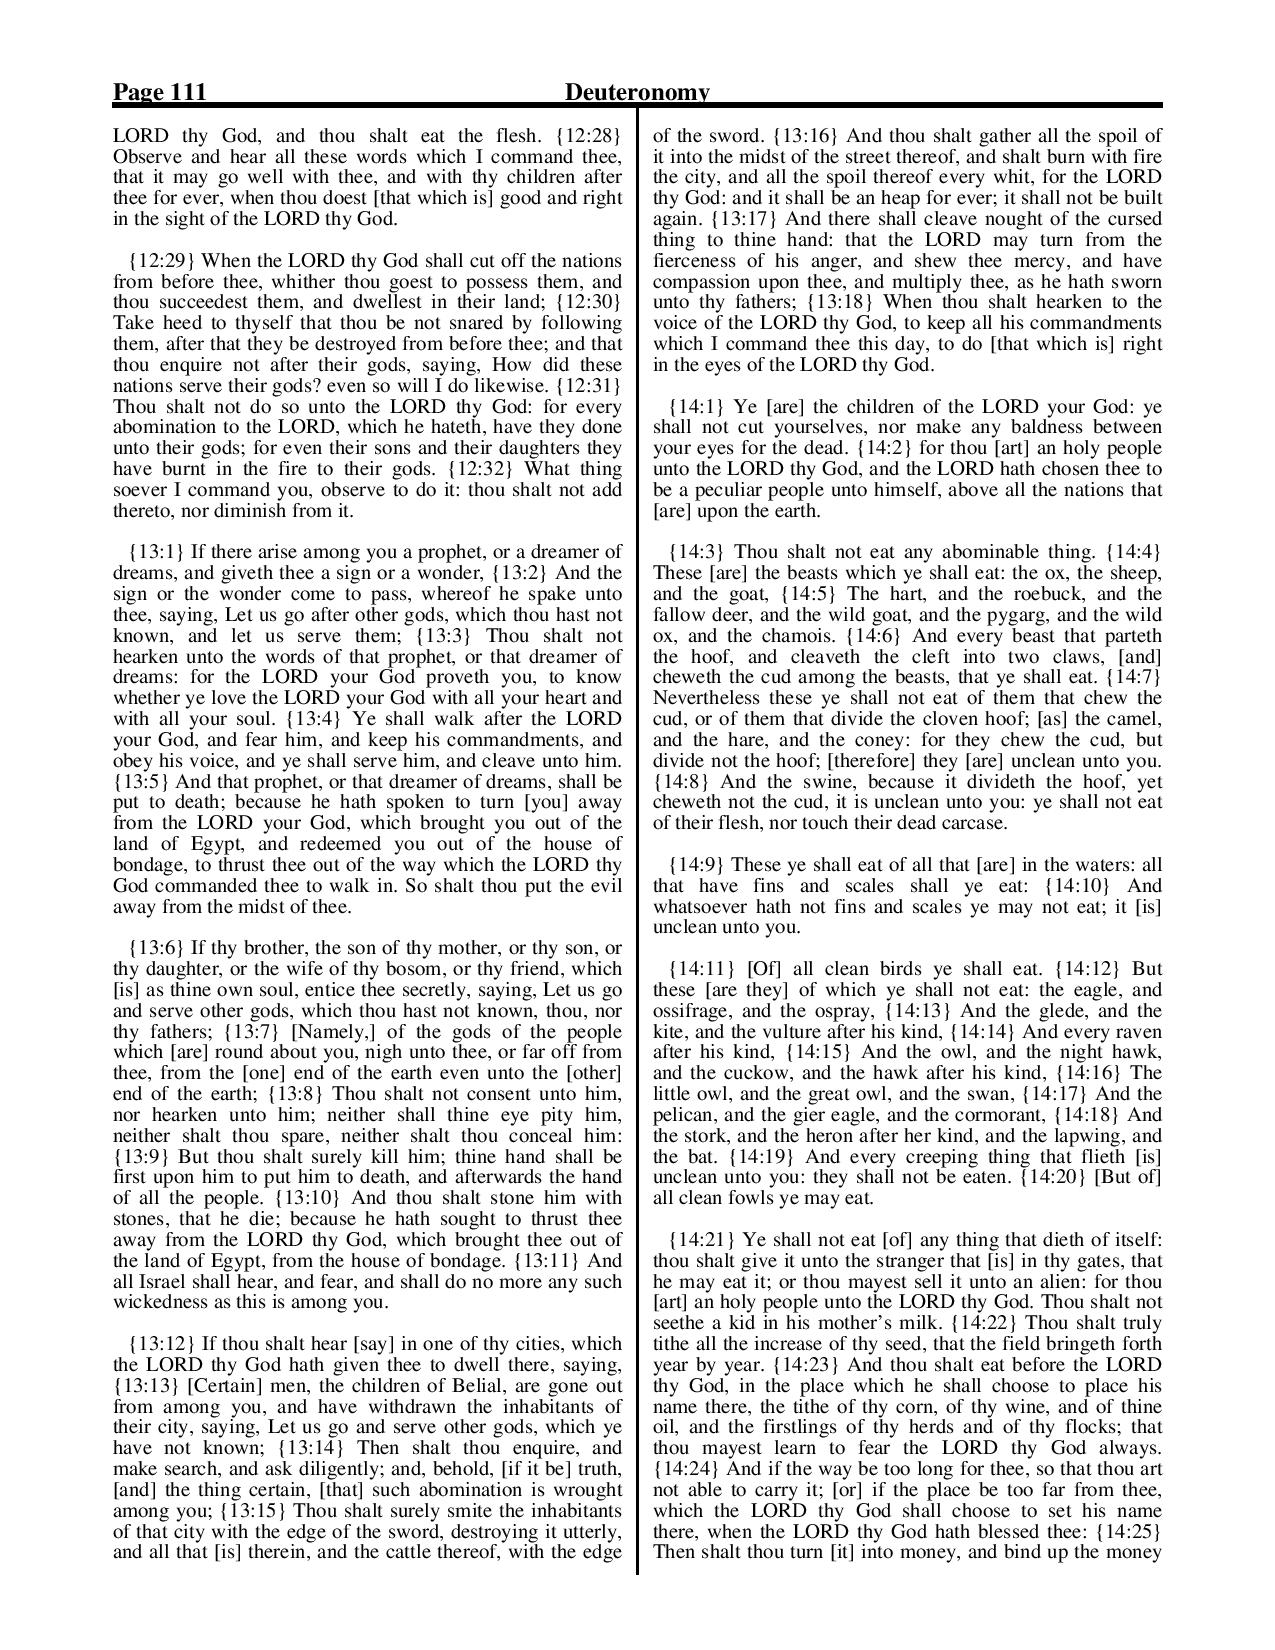 King-James-Bible-KJV-Bible-PDF-page-132